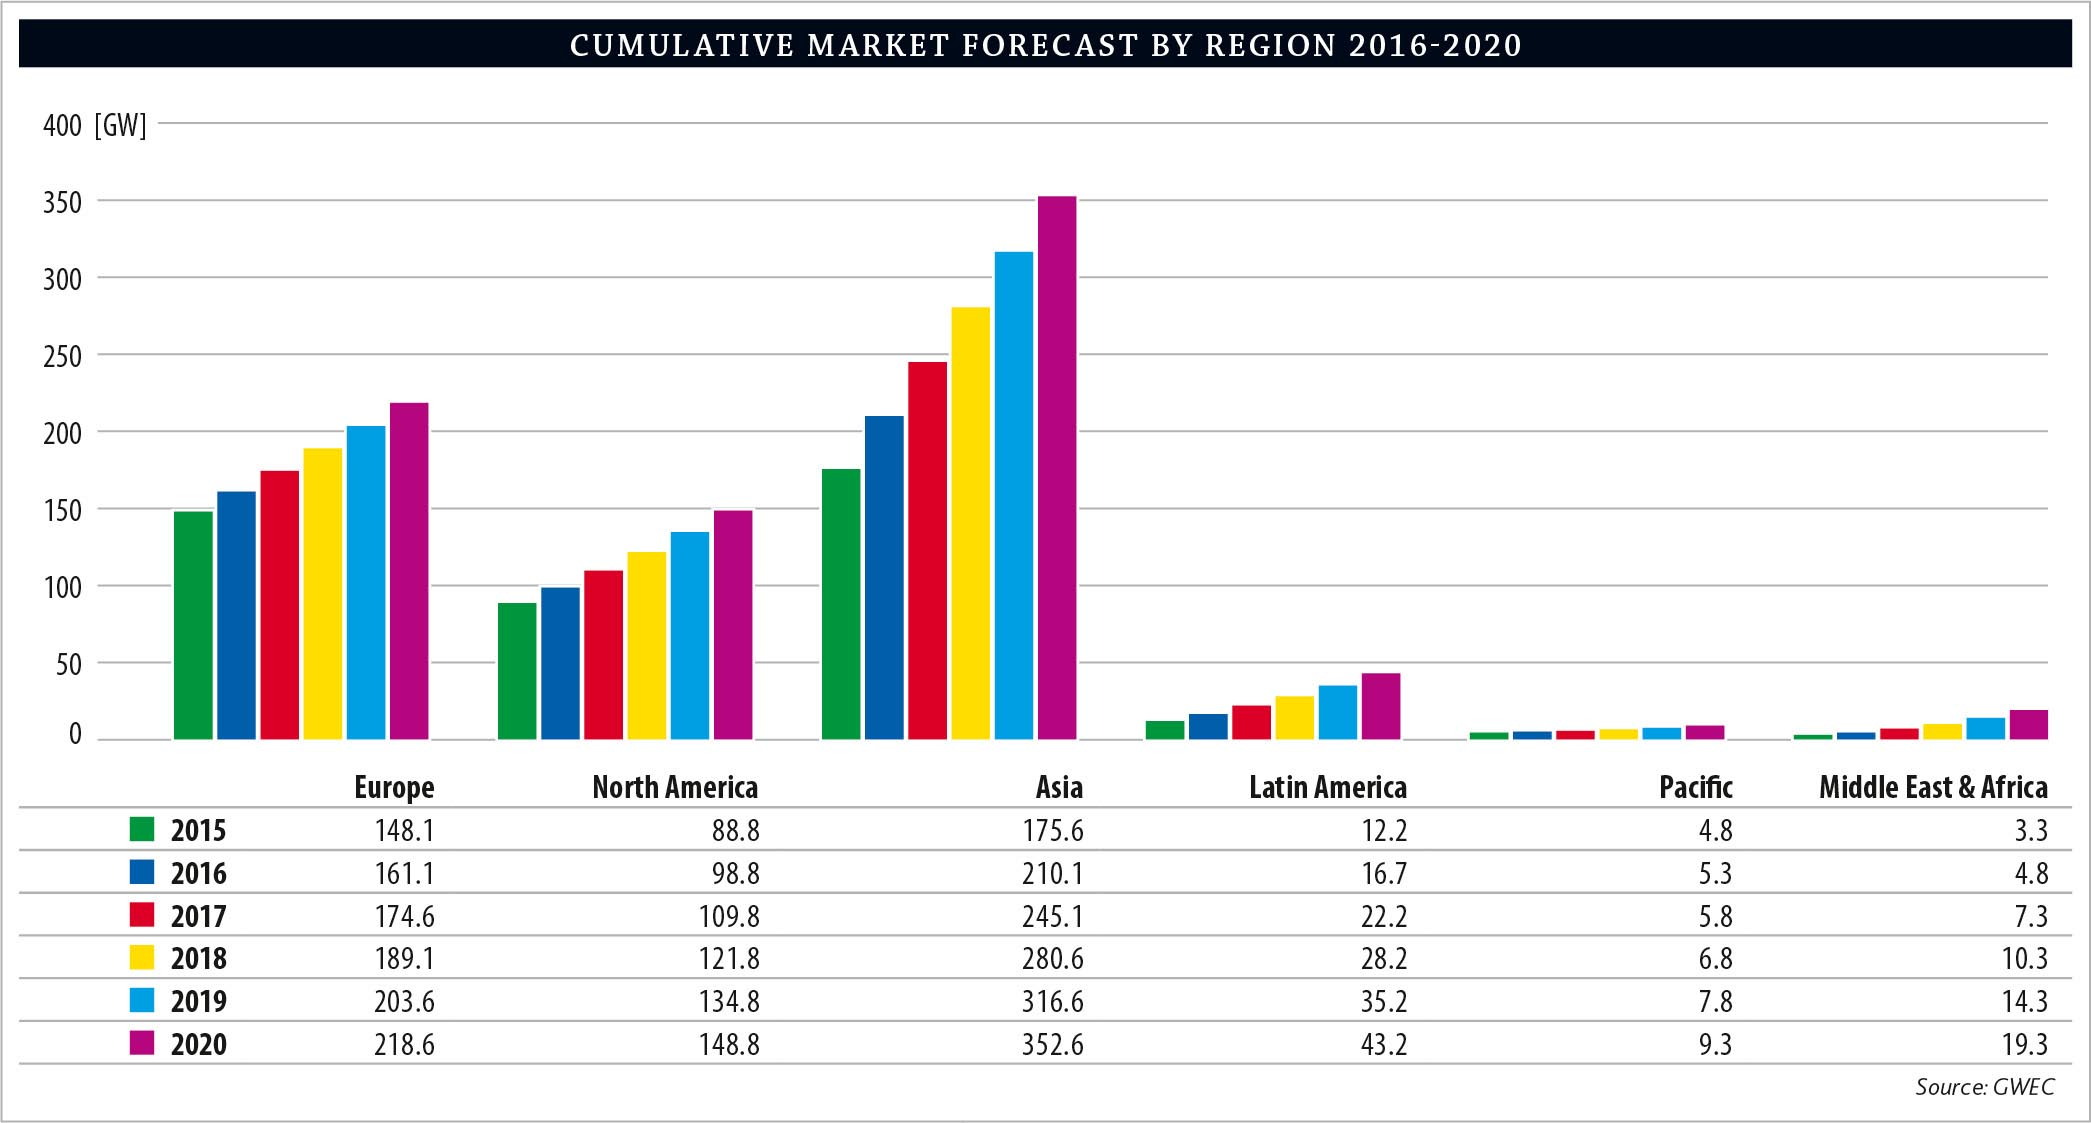 GWEC-Cumulative-wind-Market-Forecast-by-Region-2016-2020